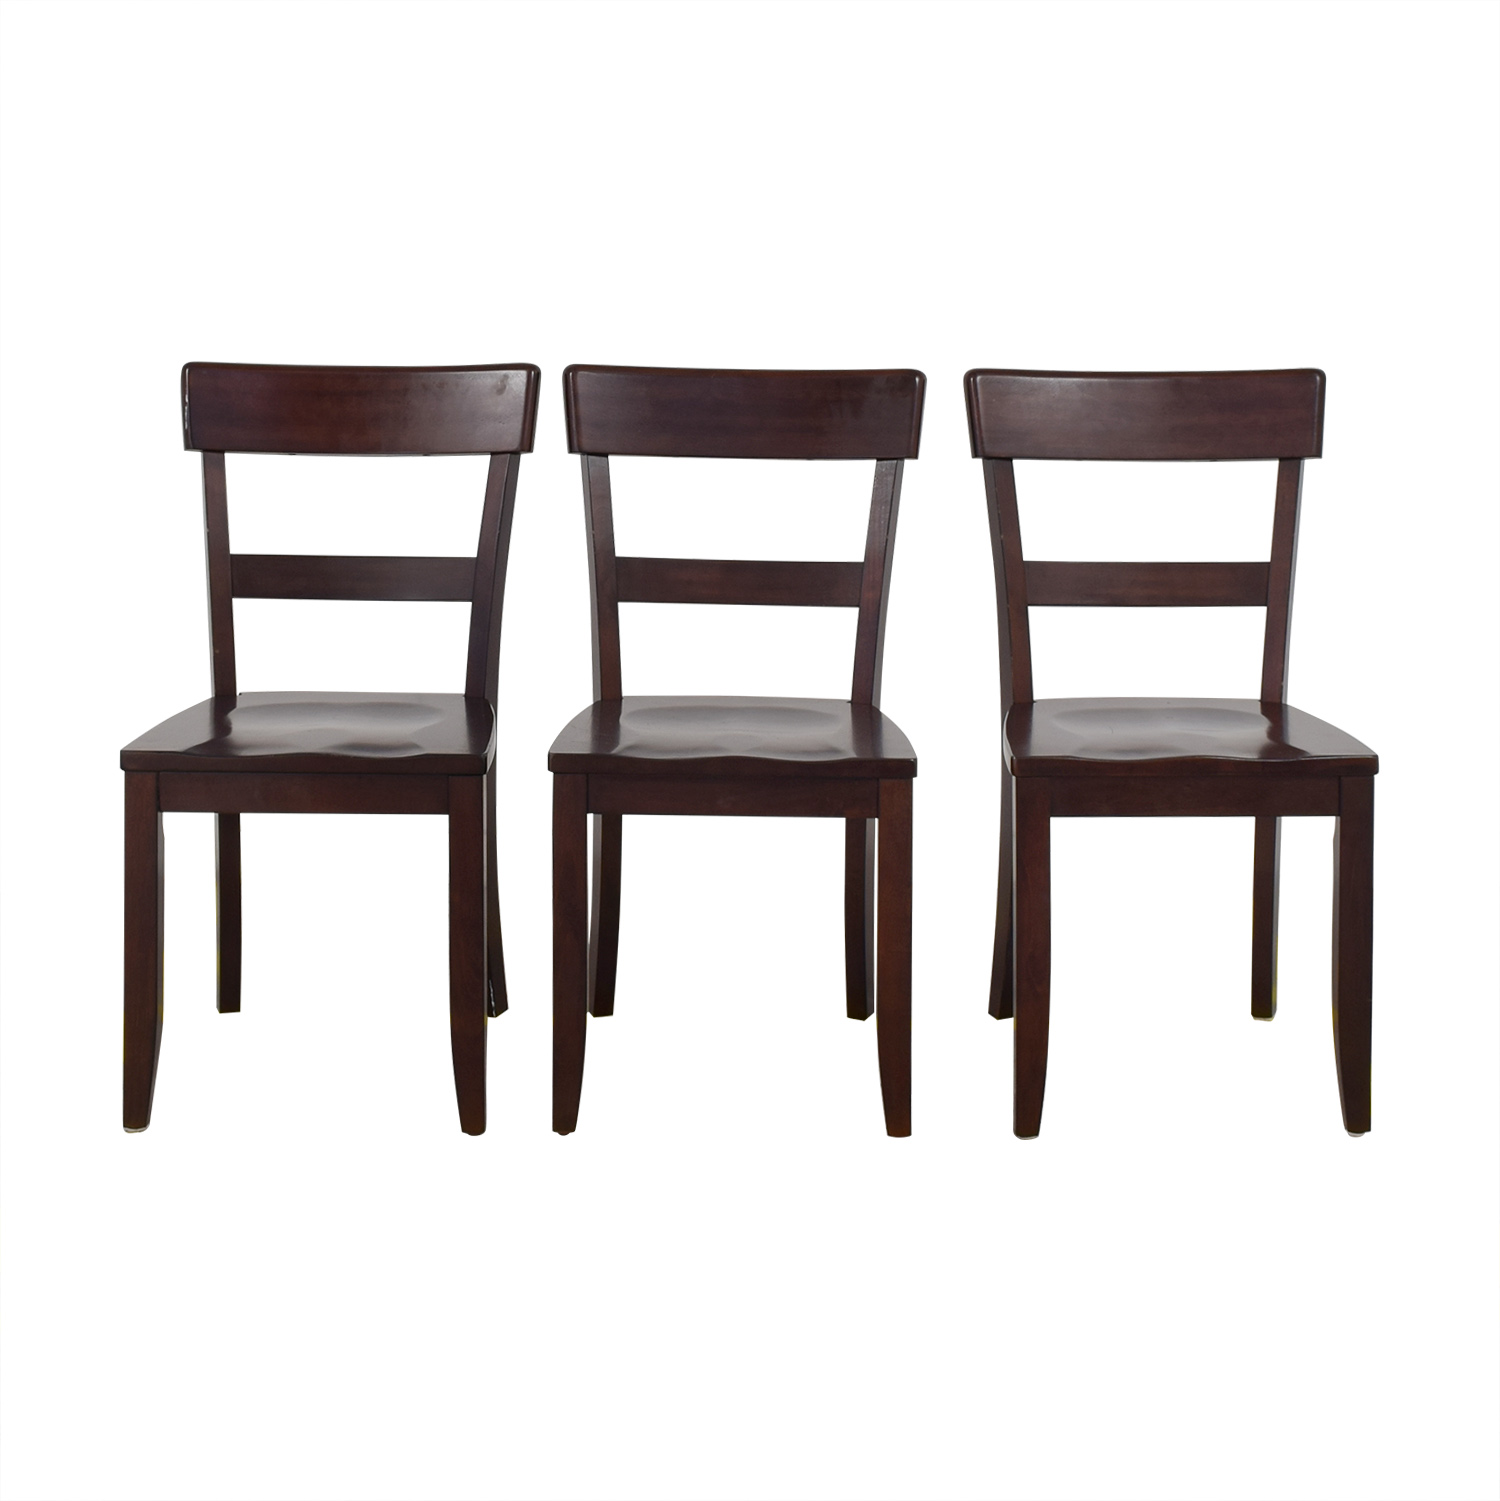 74% OFF - Pottery Barn Pottery Barn Metropolitan Dining Chairs / Chairs